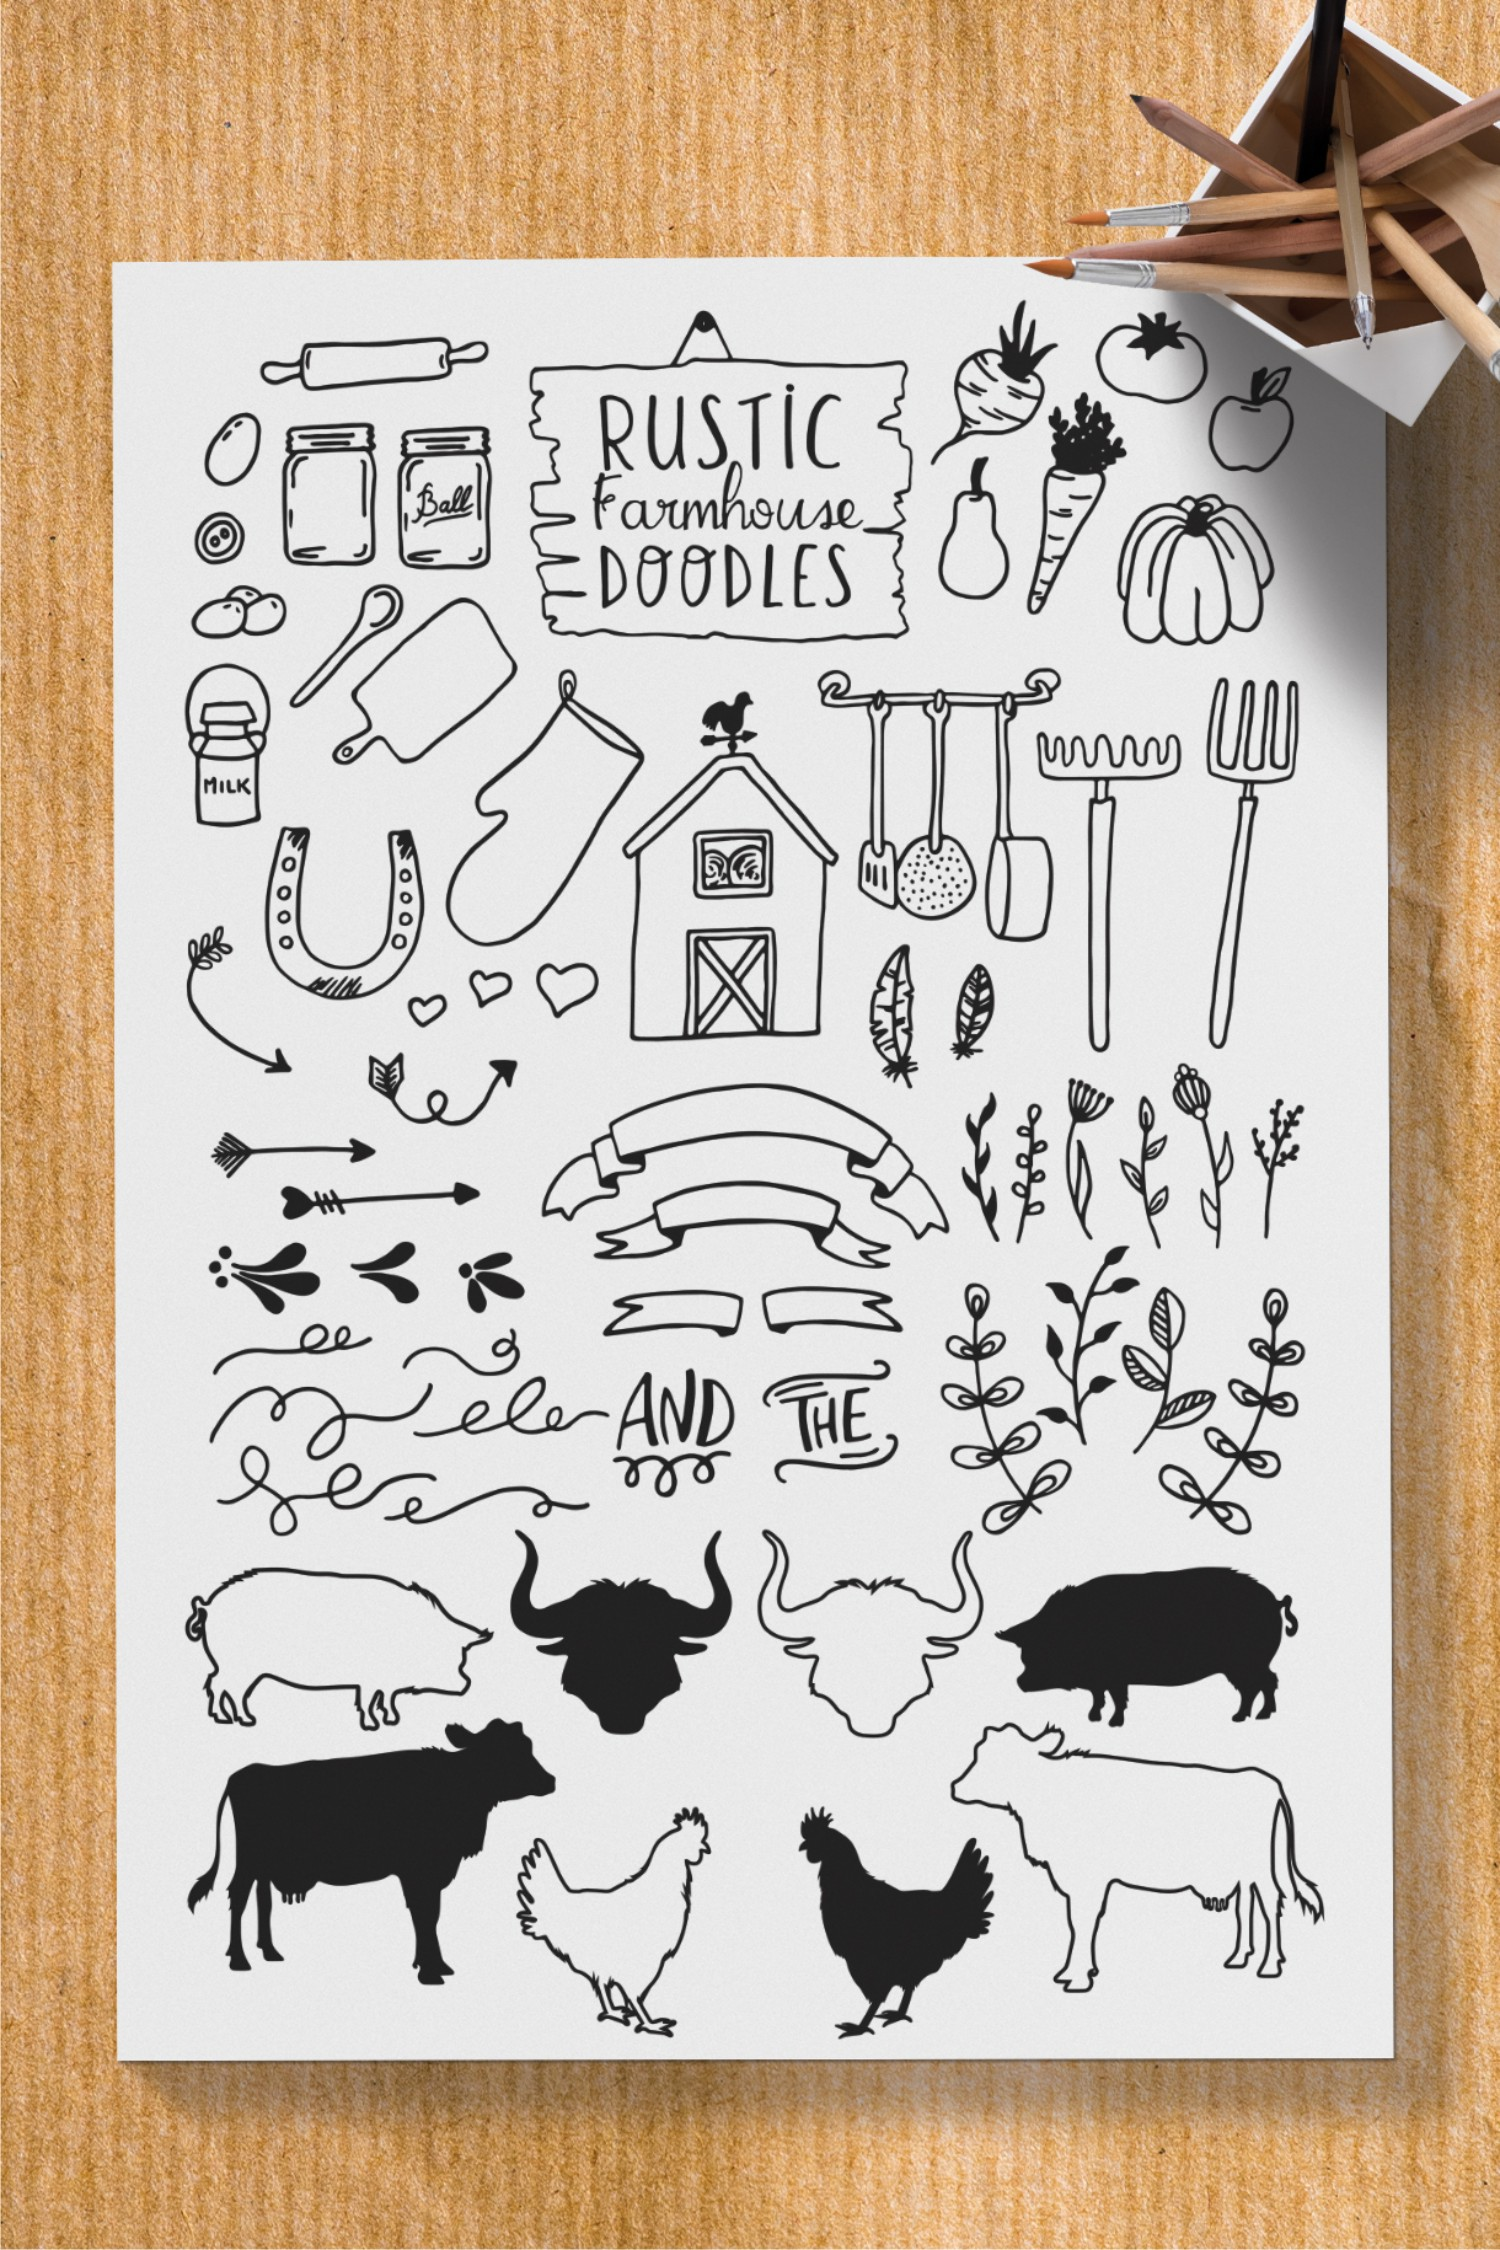 Eliott and Fern rustic font duo & Farmhouse doodles example image 9